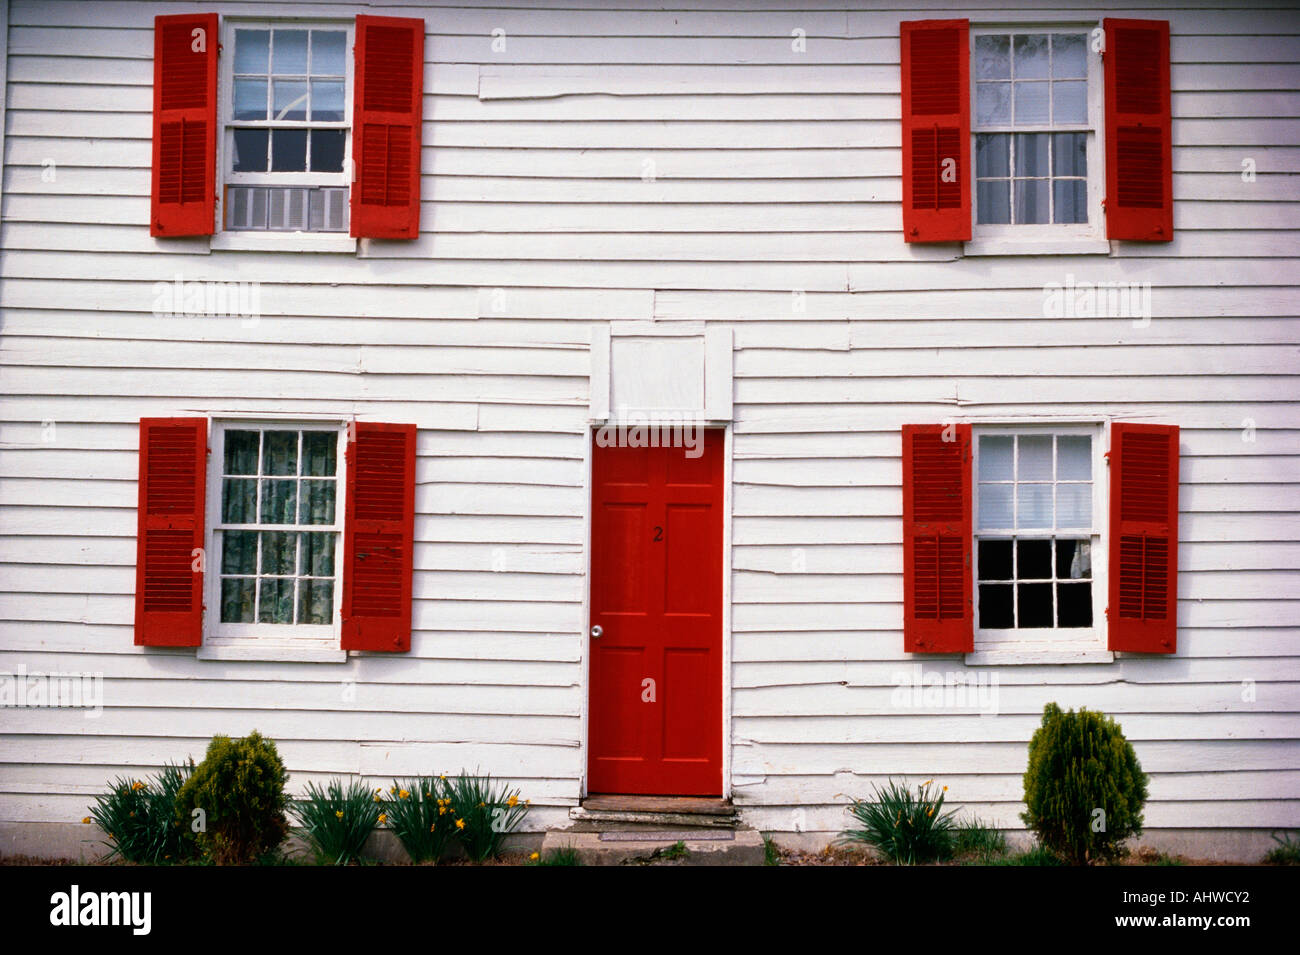 This Is A Close Up Of A White House With Red Shutters The Front Door